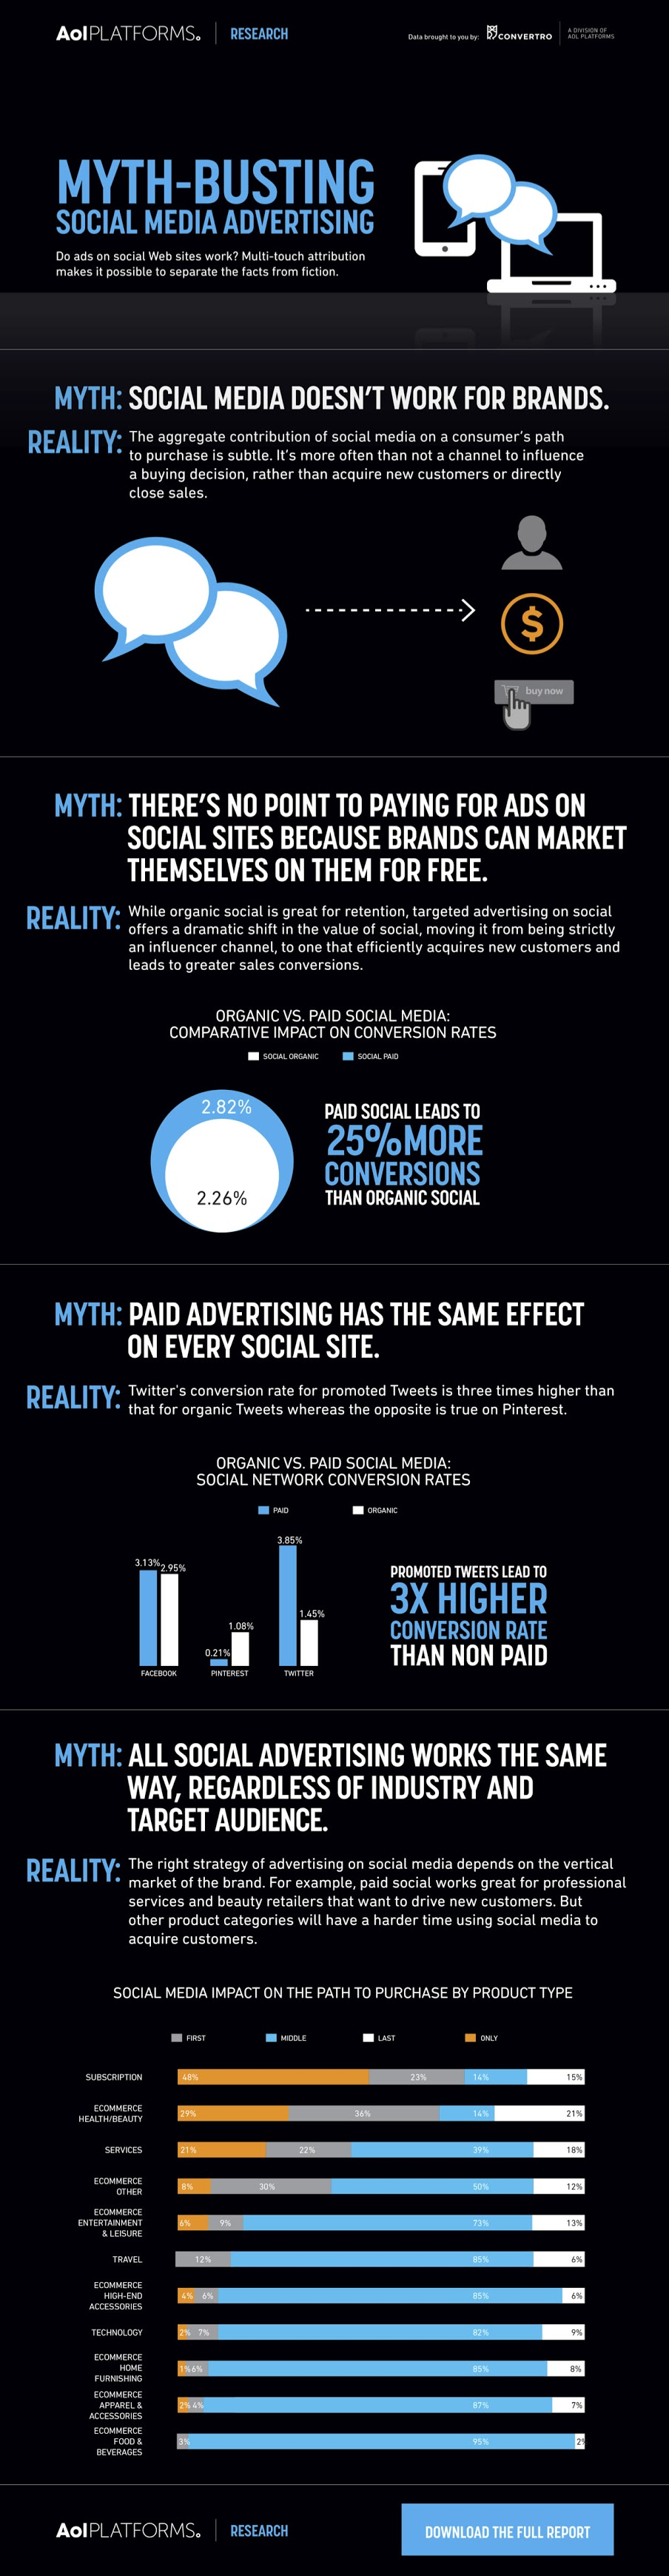 social media ads myth busting